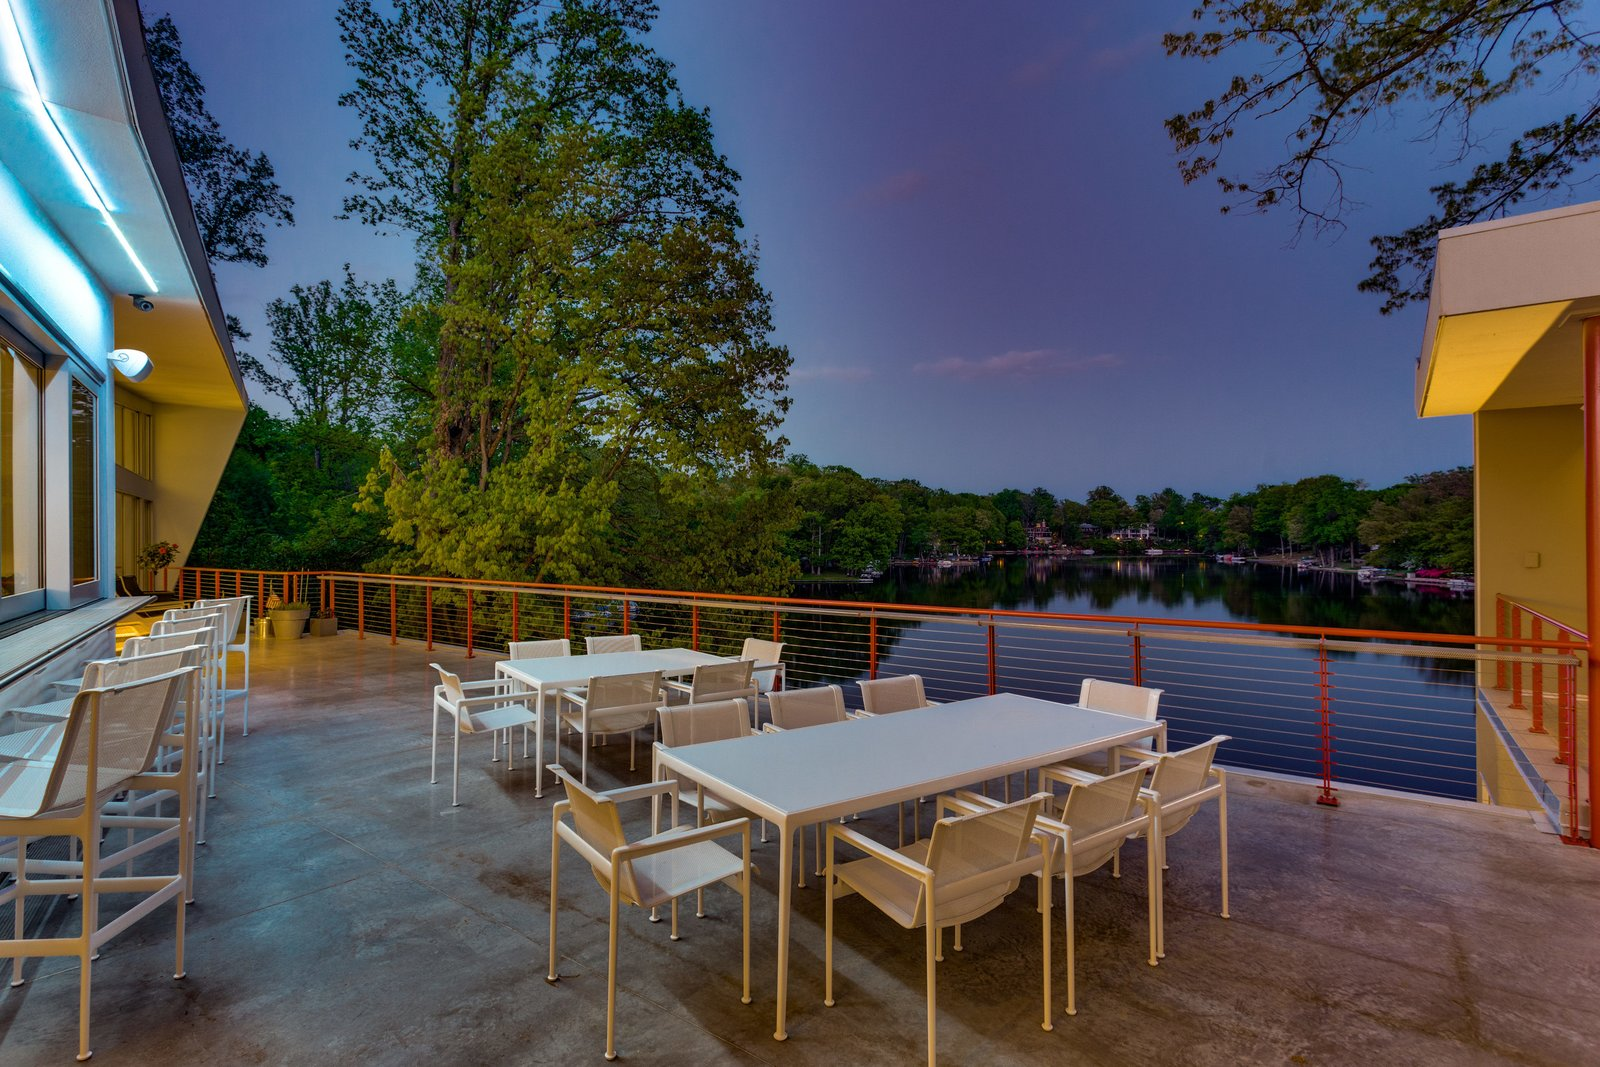 Outdoor, Horizontal Fences, Wall, Back Yard, Trees, Landscape Lighting, Concrete Pools, Tubs, Shower, and Concrete Patio, Porch, Deck View from terrace to Lake Barcroft  Jafari Residence